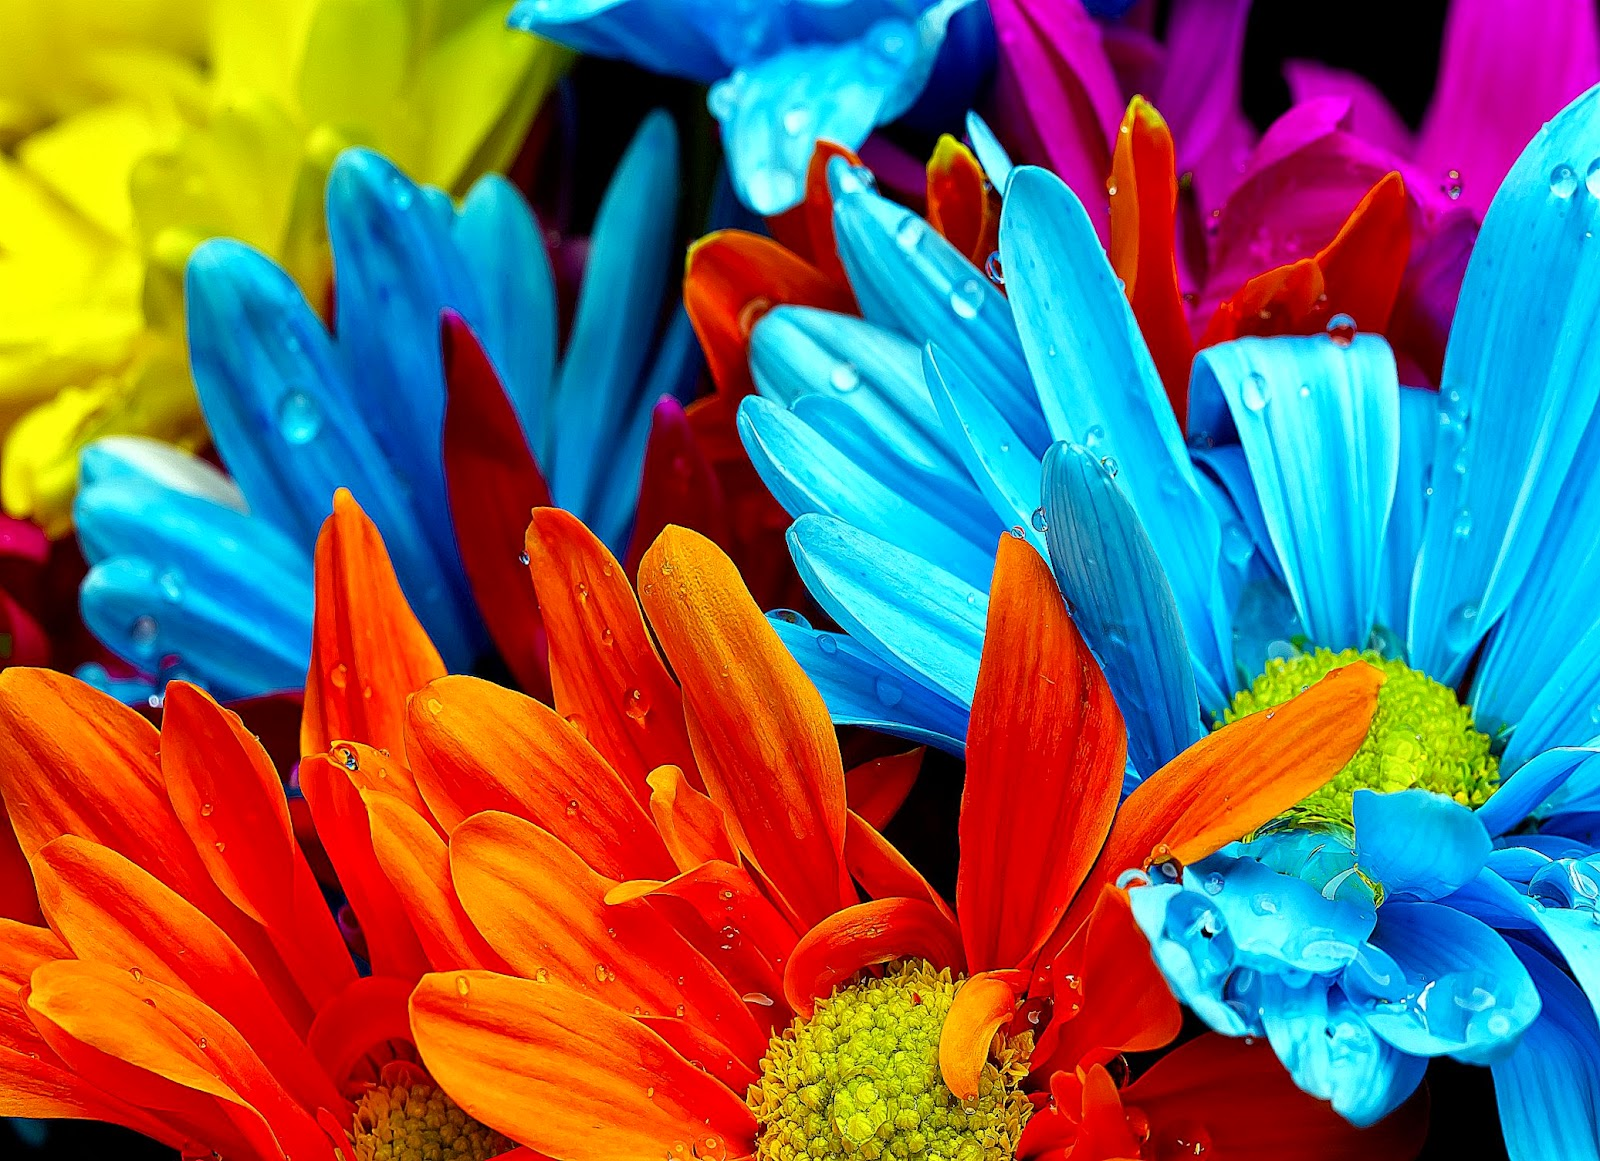 Pictures Of Colorful Flowers | Free Coloring Pictures